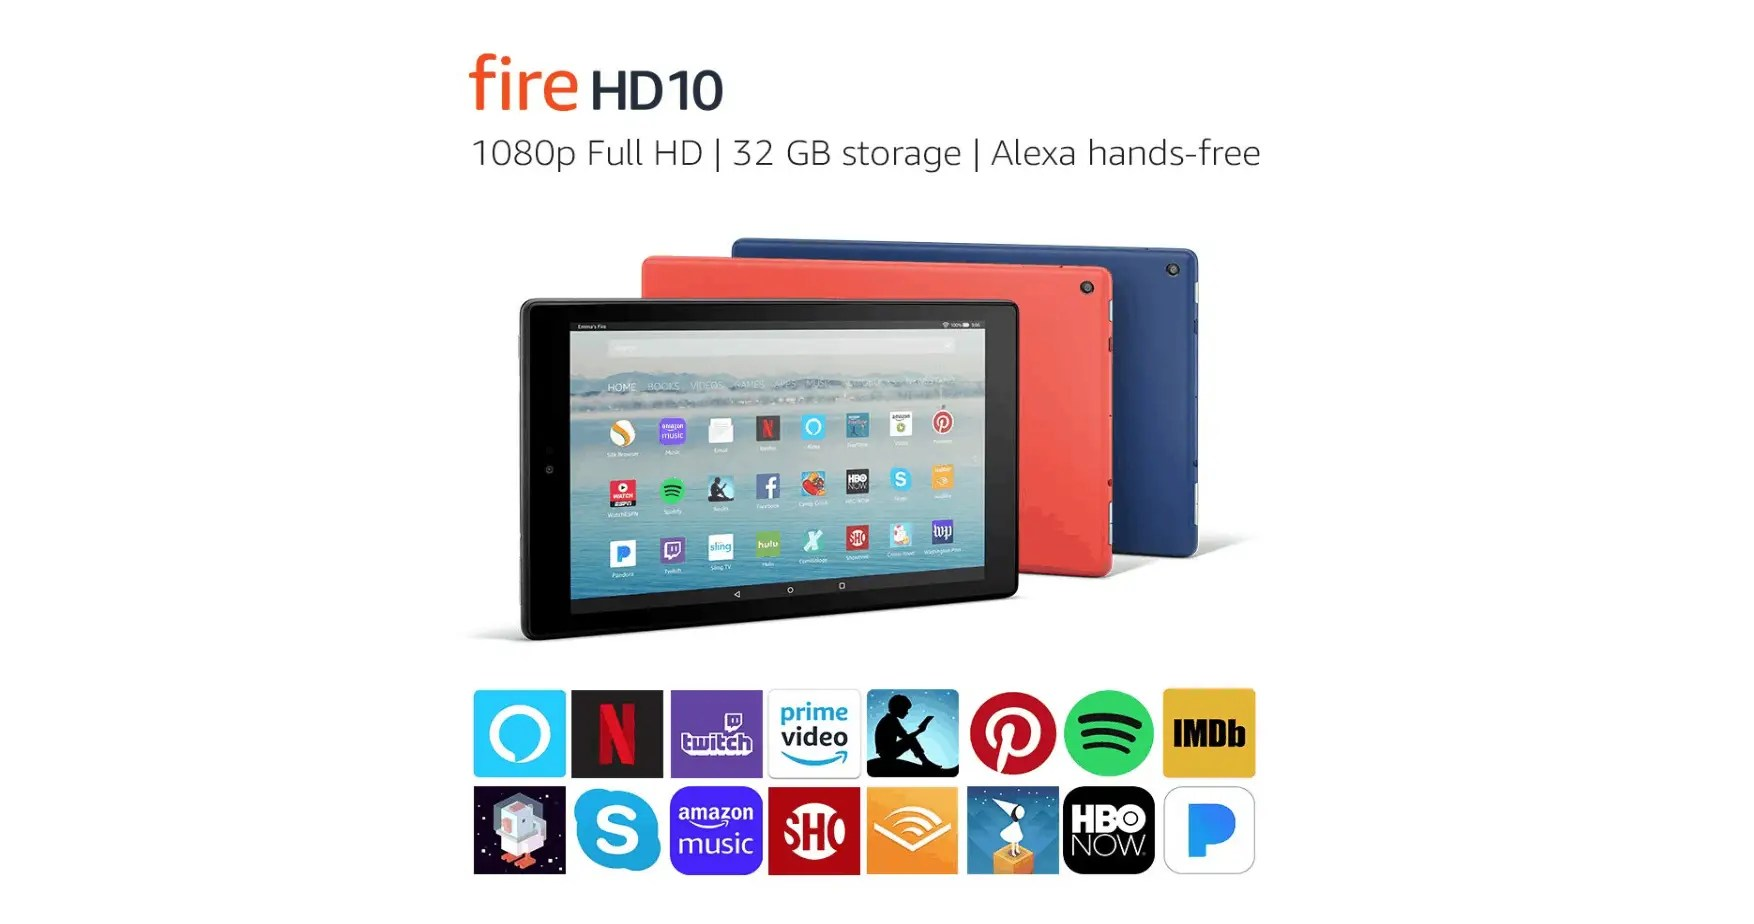 Amazon Fire HD 10 Tablet is Now Only $100